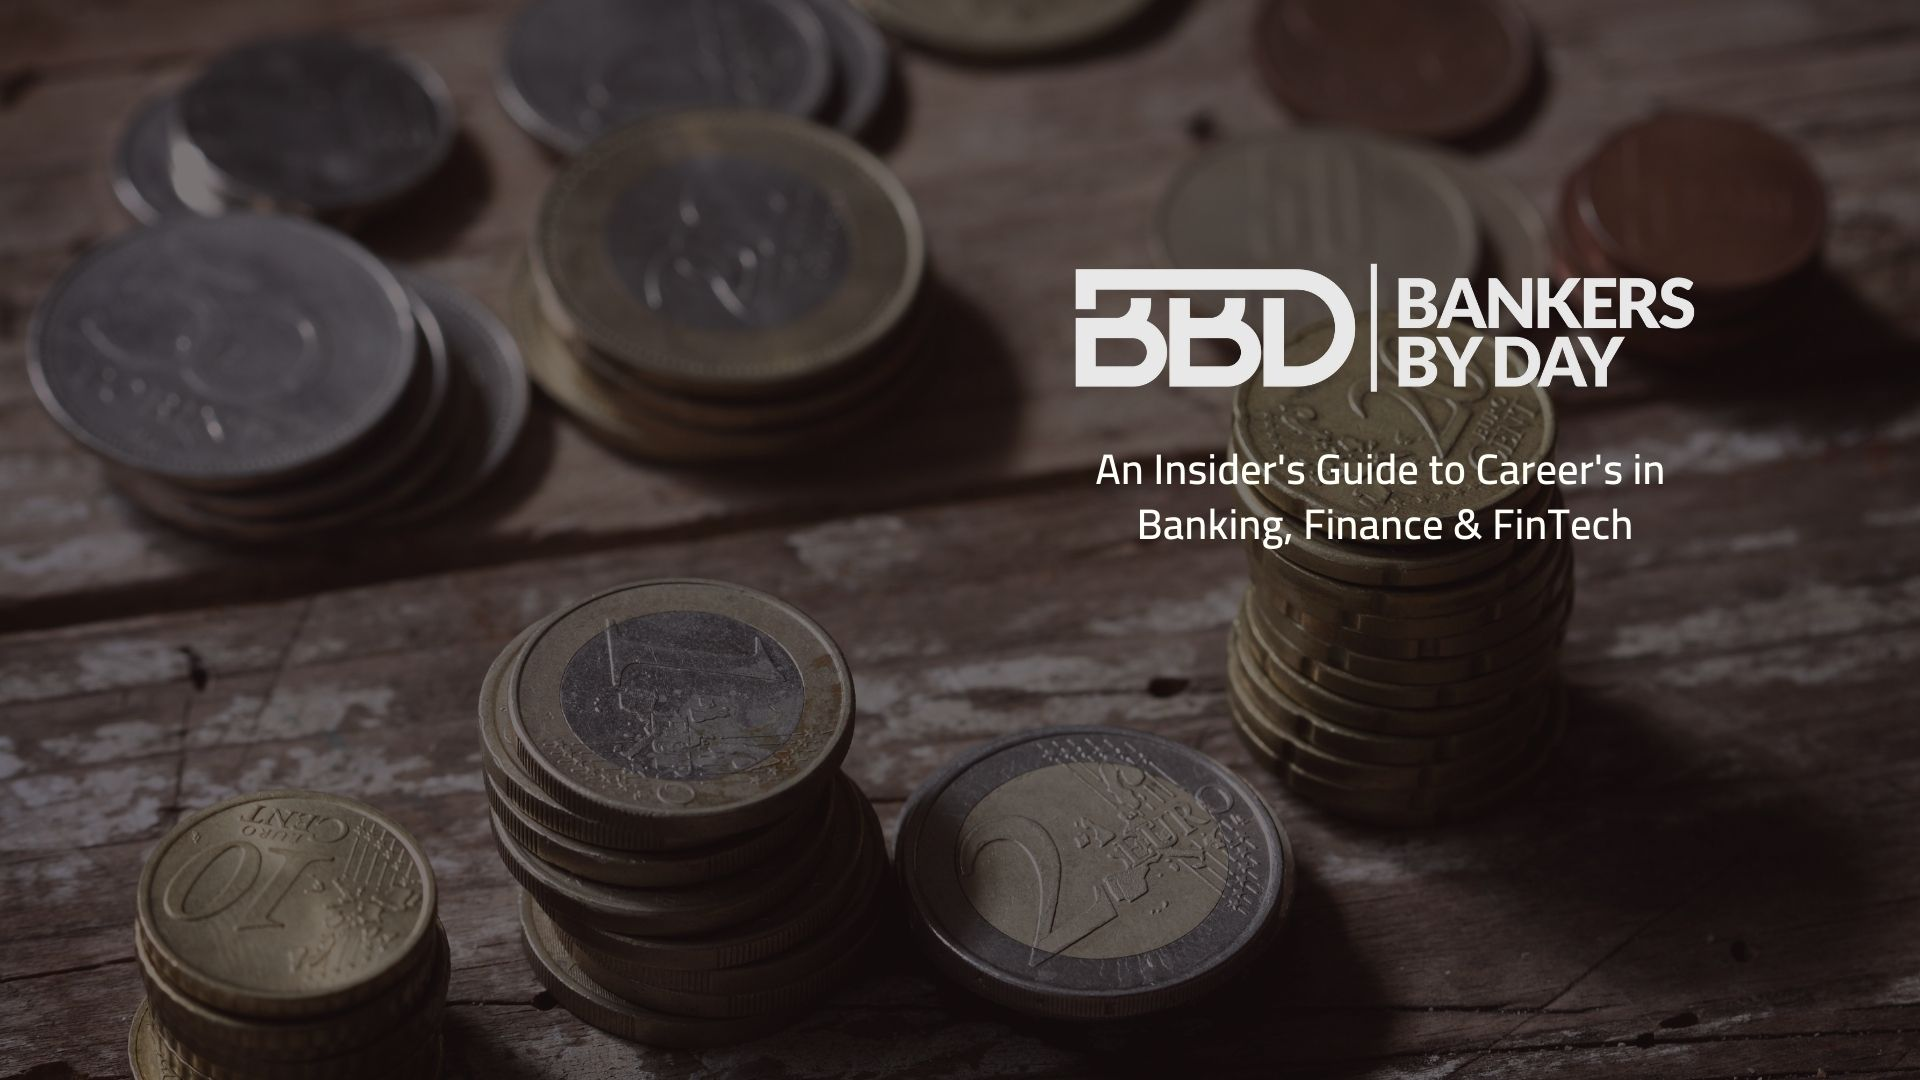 About BankersByDay